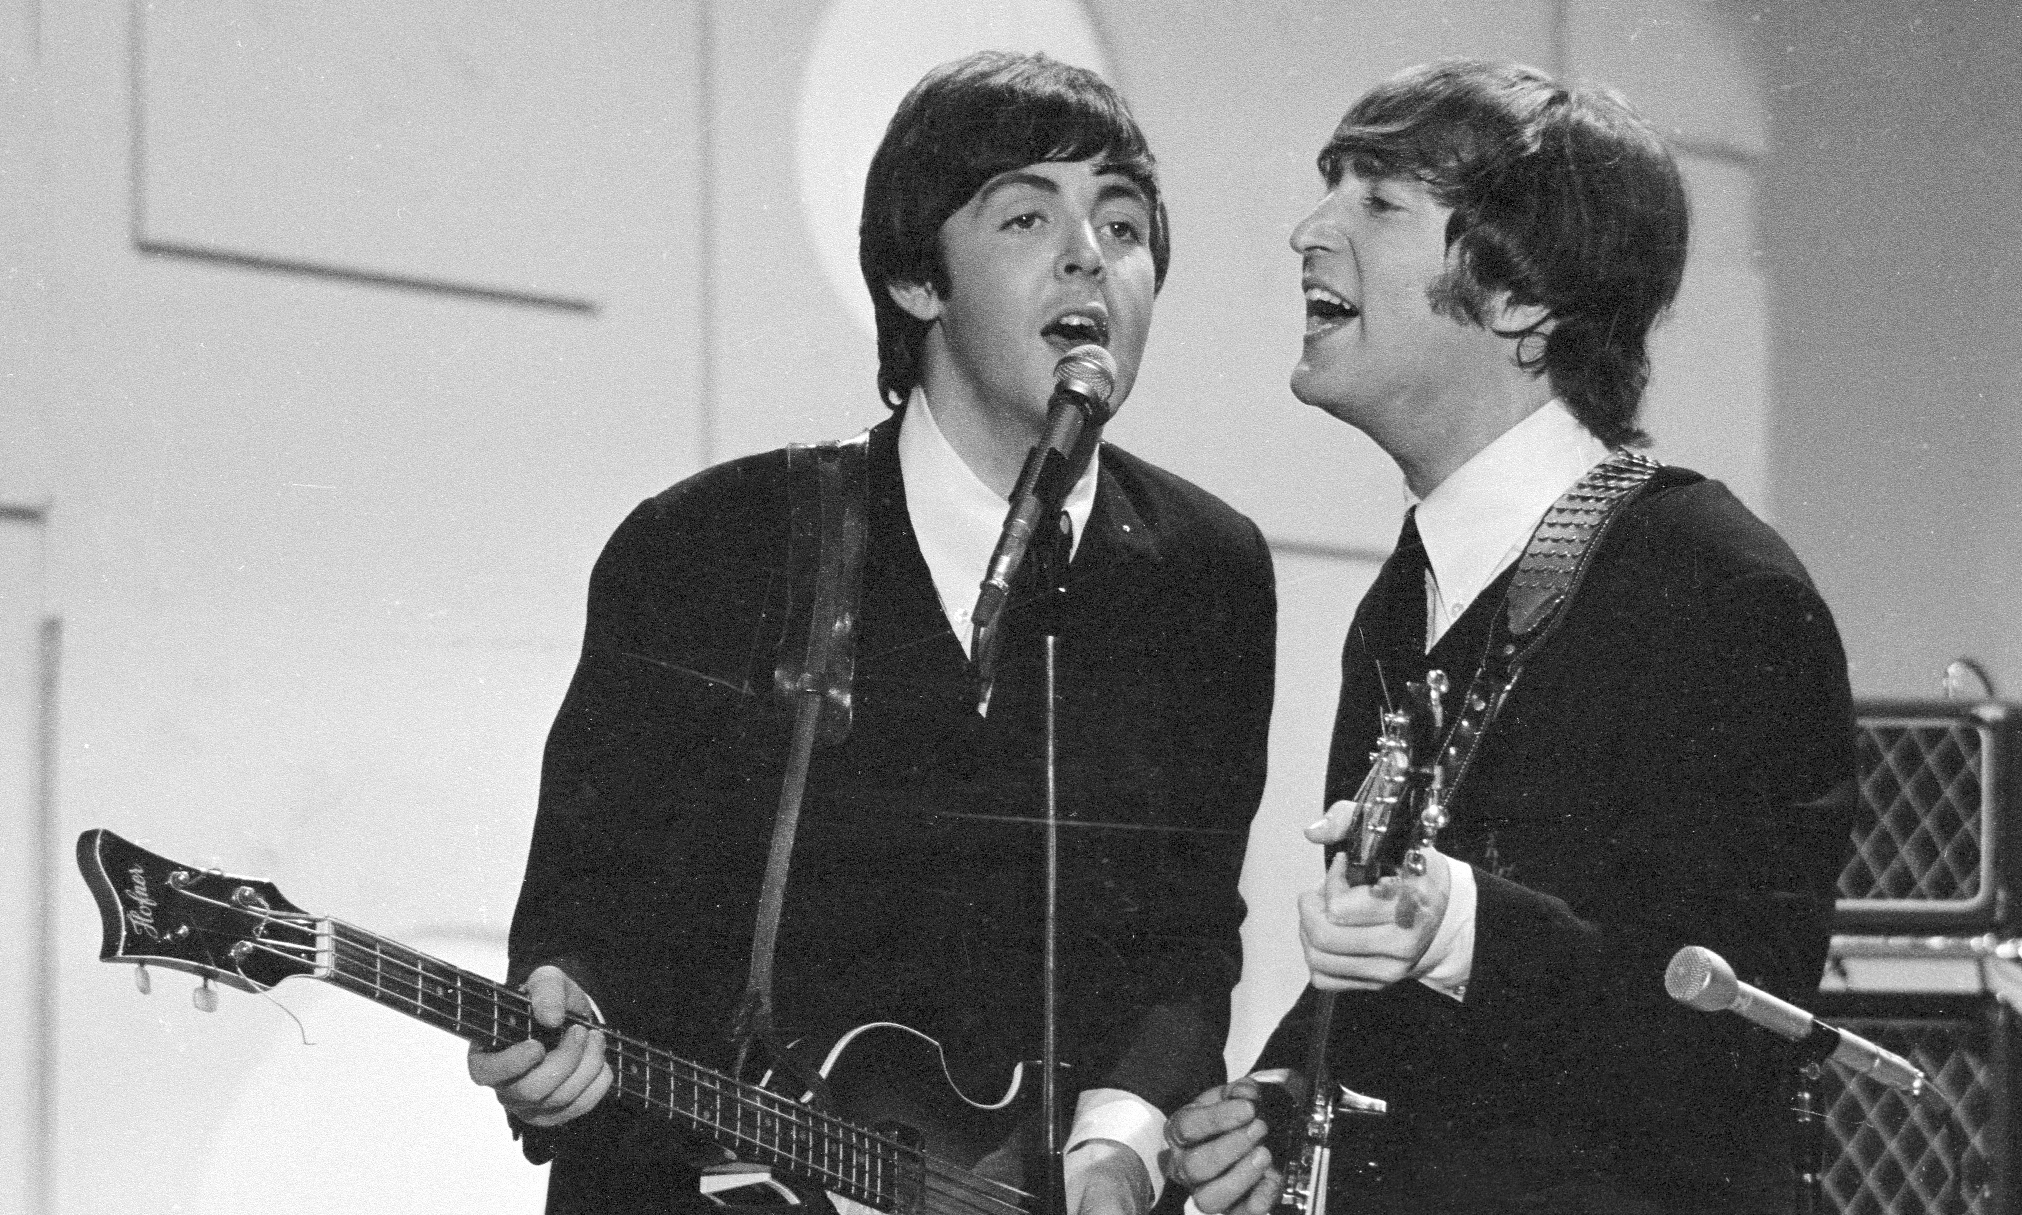 The Beatles' Paul McCartney and John Lennon